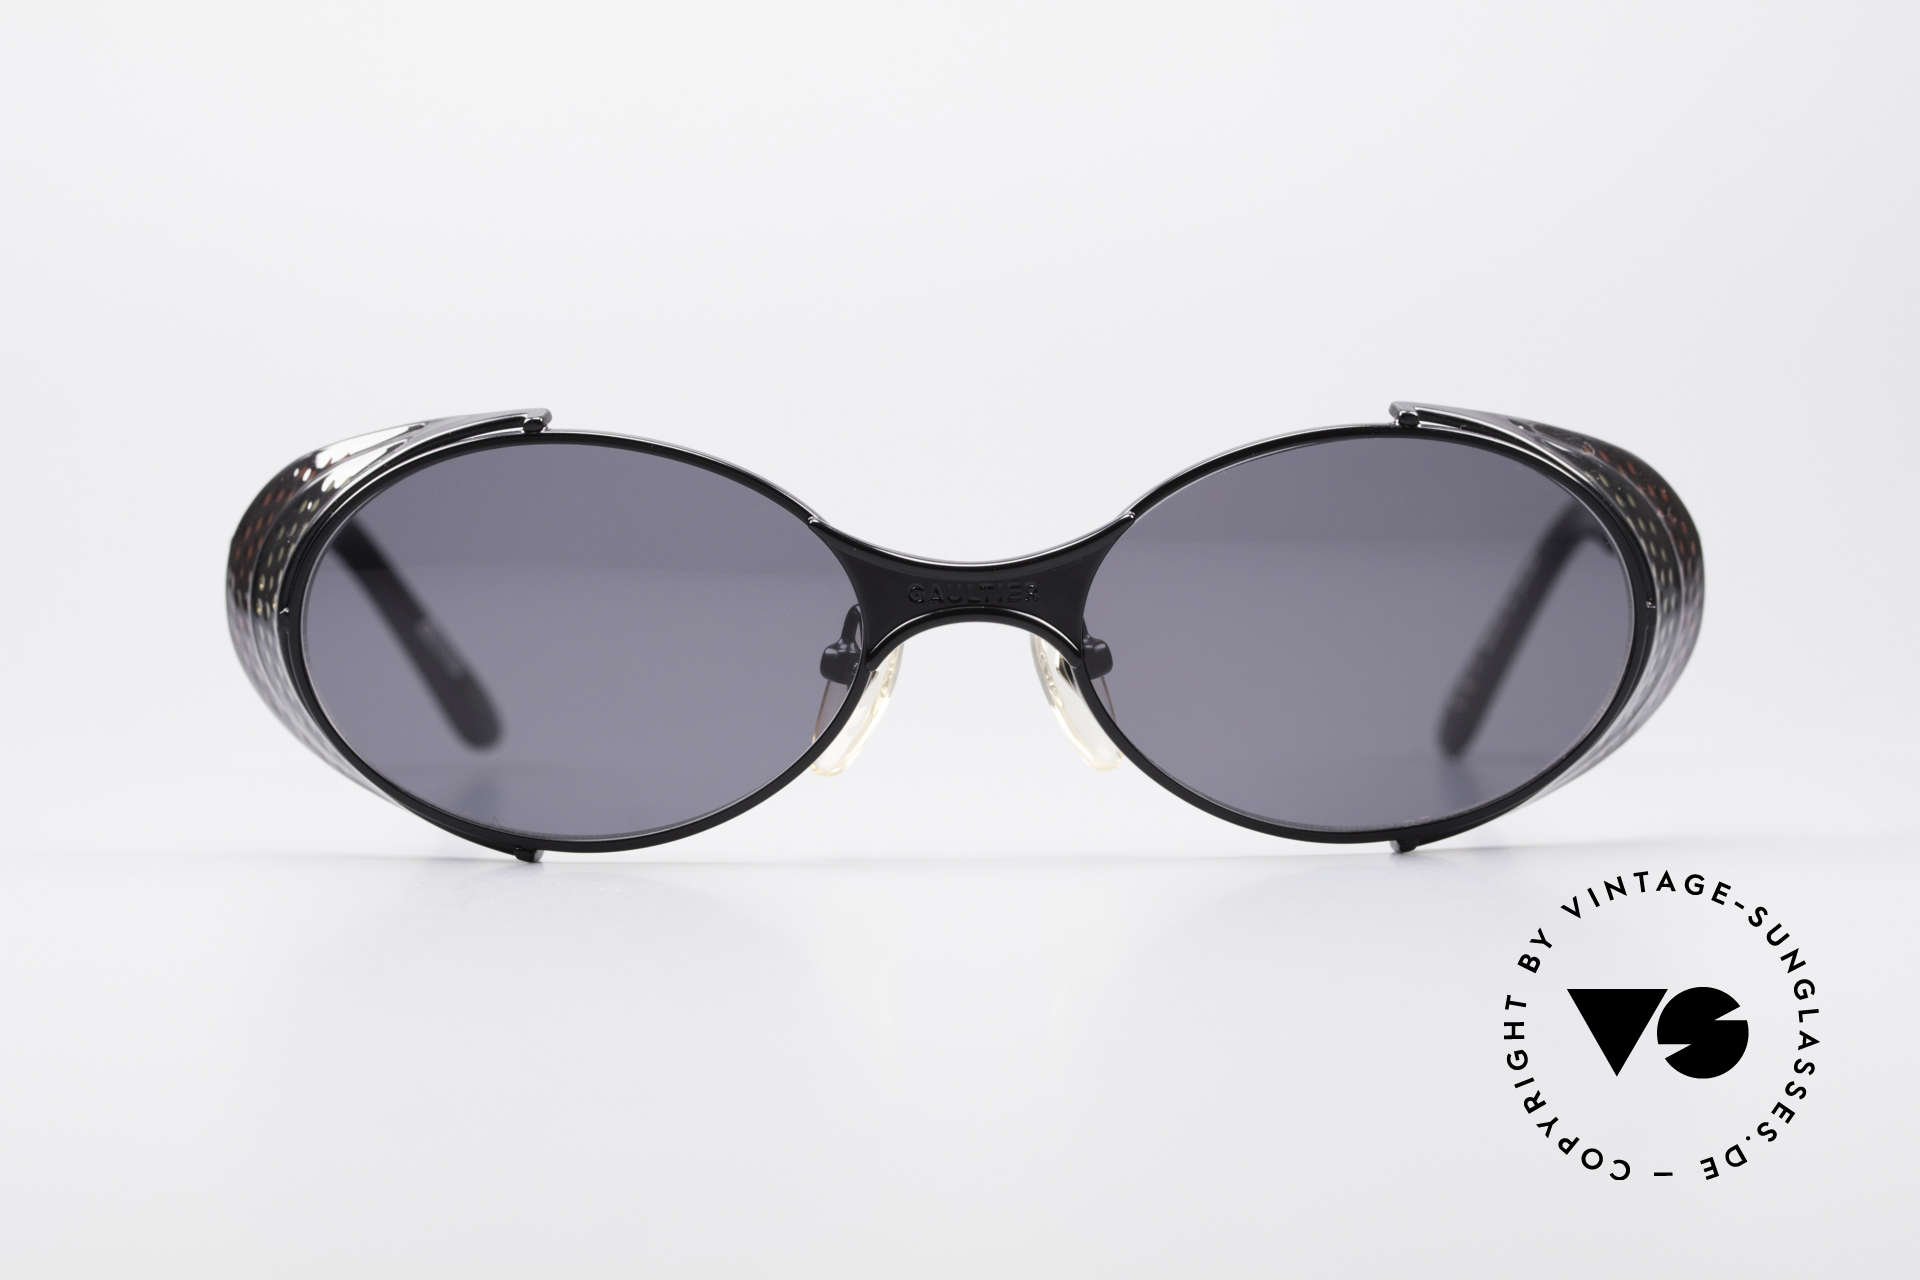 Jean Paul Gaultier 56-7109 JPG Steampunk Sunglasses, 'STEAMPUNK' shades' by the eccentric French designer, Made for Men and Women